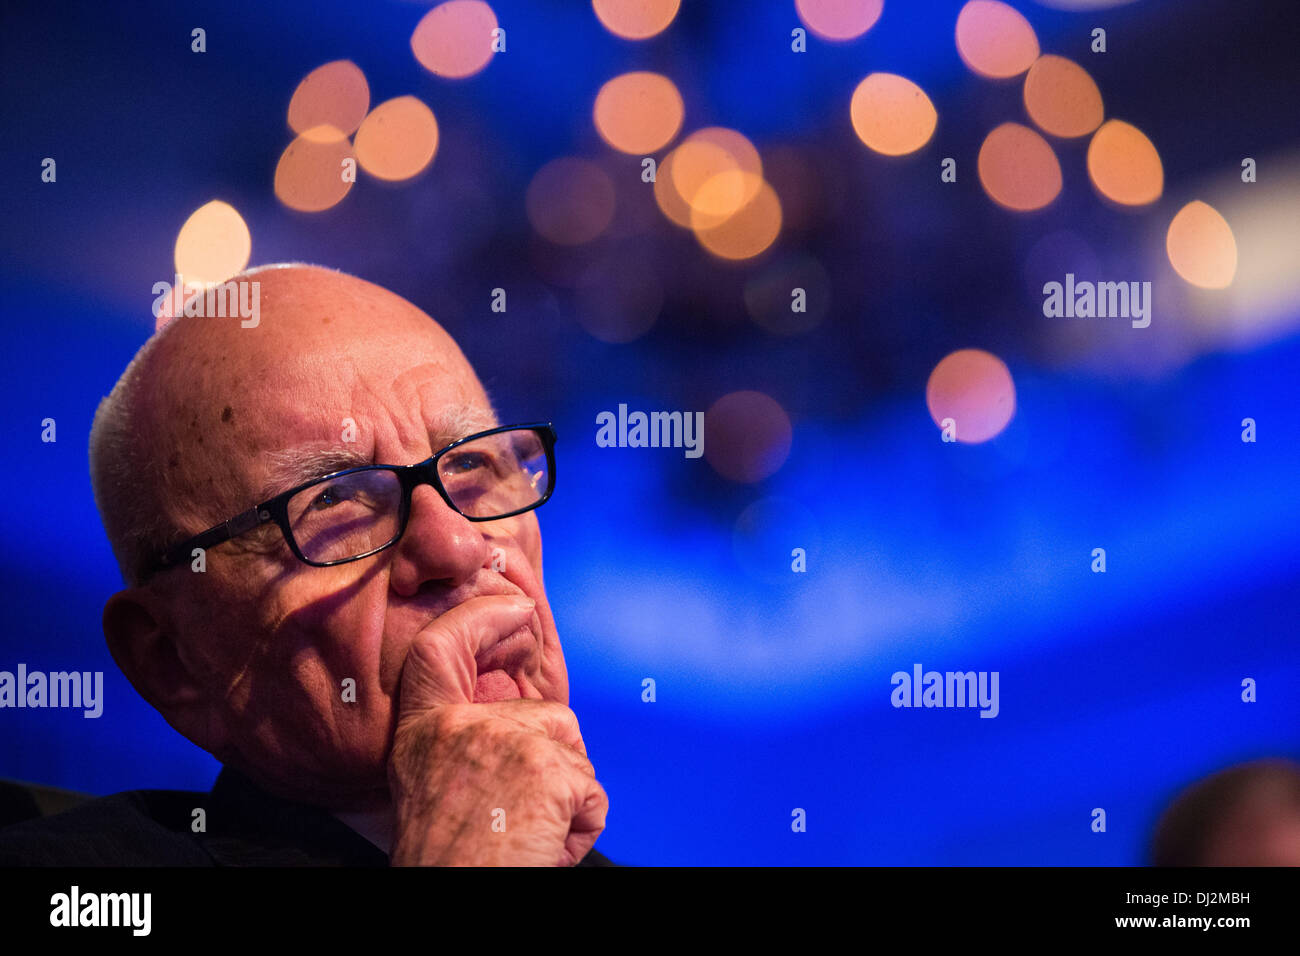 Washington, DC. 19th Nov, 2013. Rupert Murdoch listens to United States President Barack Obama make remarks at the Wall Street Journal CEO Council annual meeting, at the Four Seasons Hotel, on November 19, 2013, in Washington, DC. Obama discussed immigration reform and the health care rollout, among other topics. Credit: Drew Angerer / Pool via CNP/dpa/Alamy Live News - Stock Image